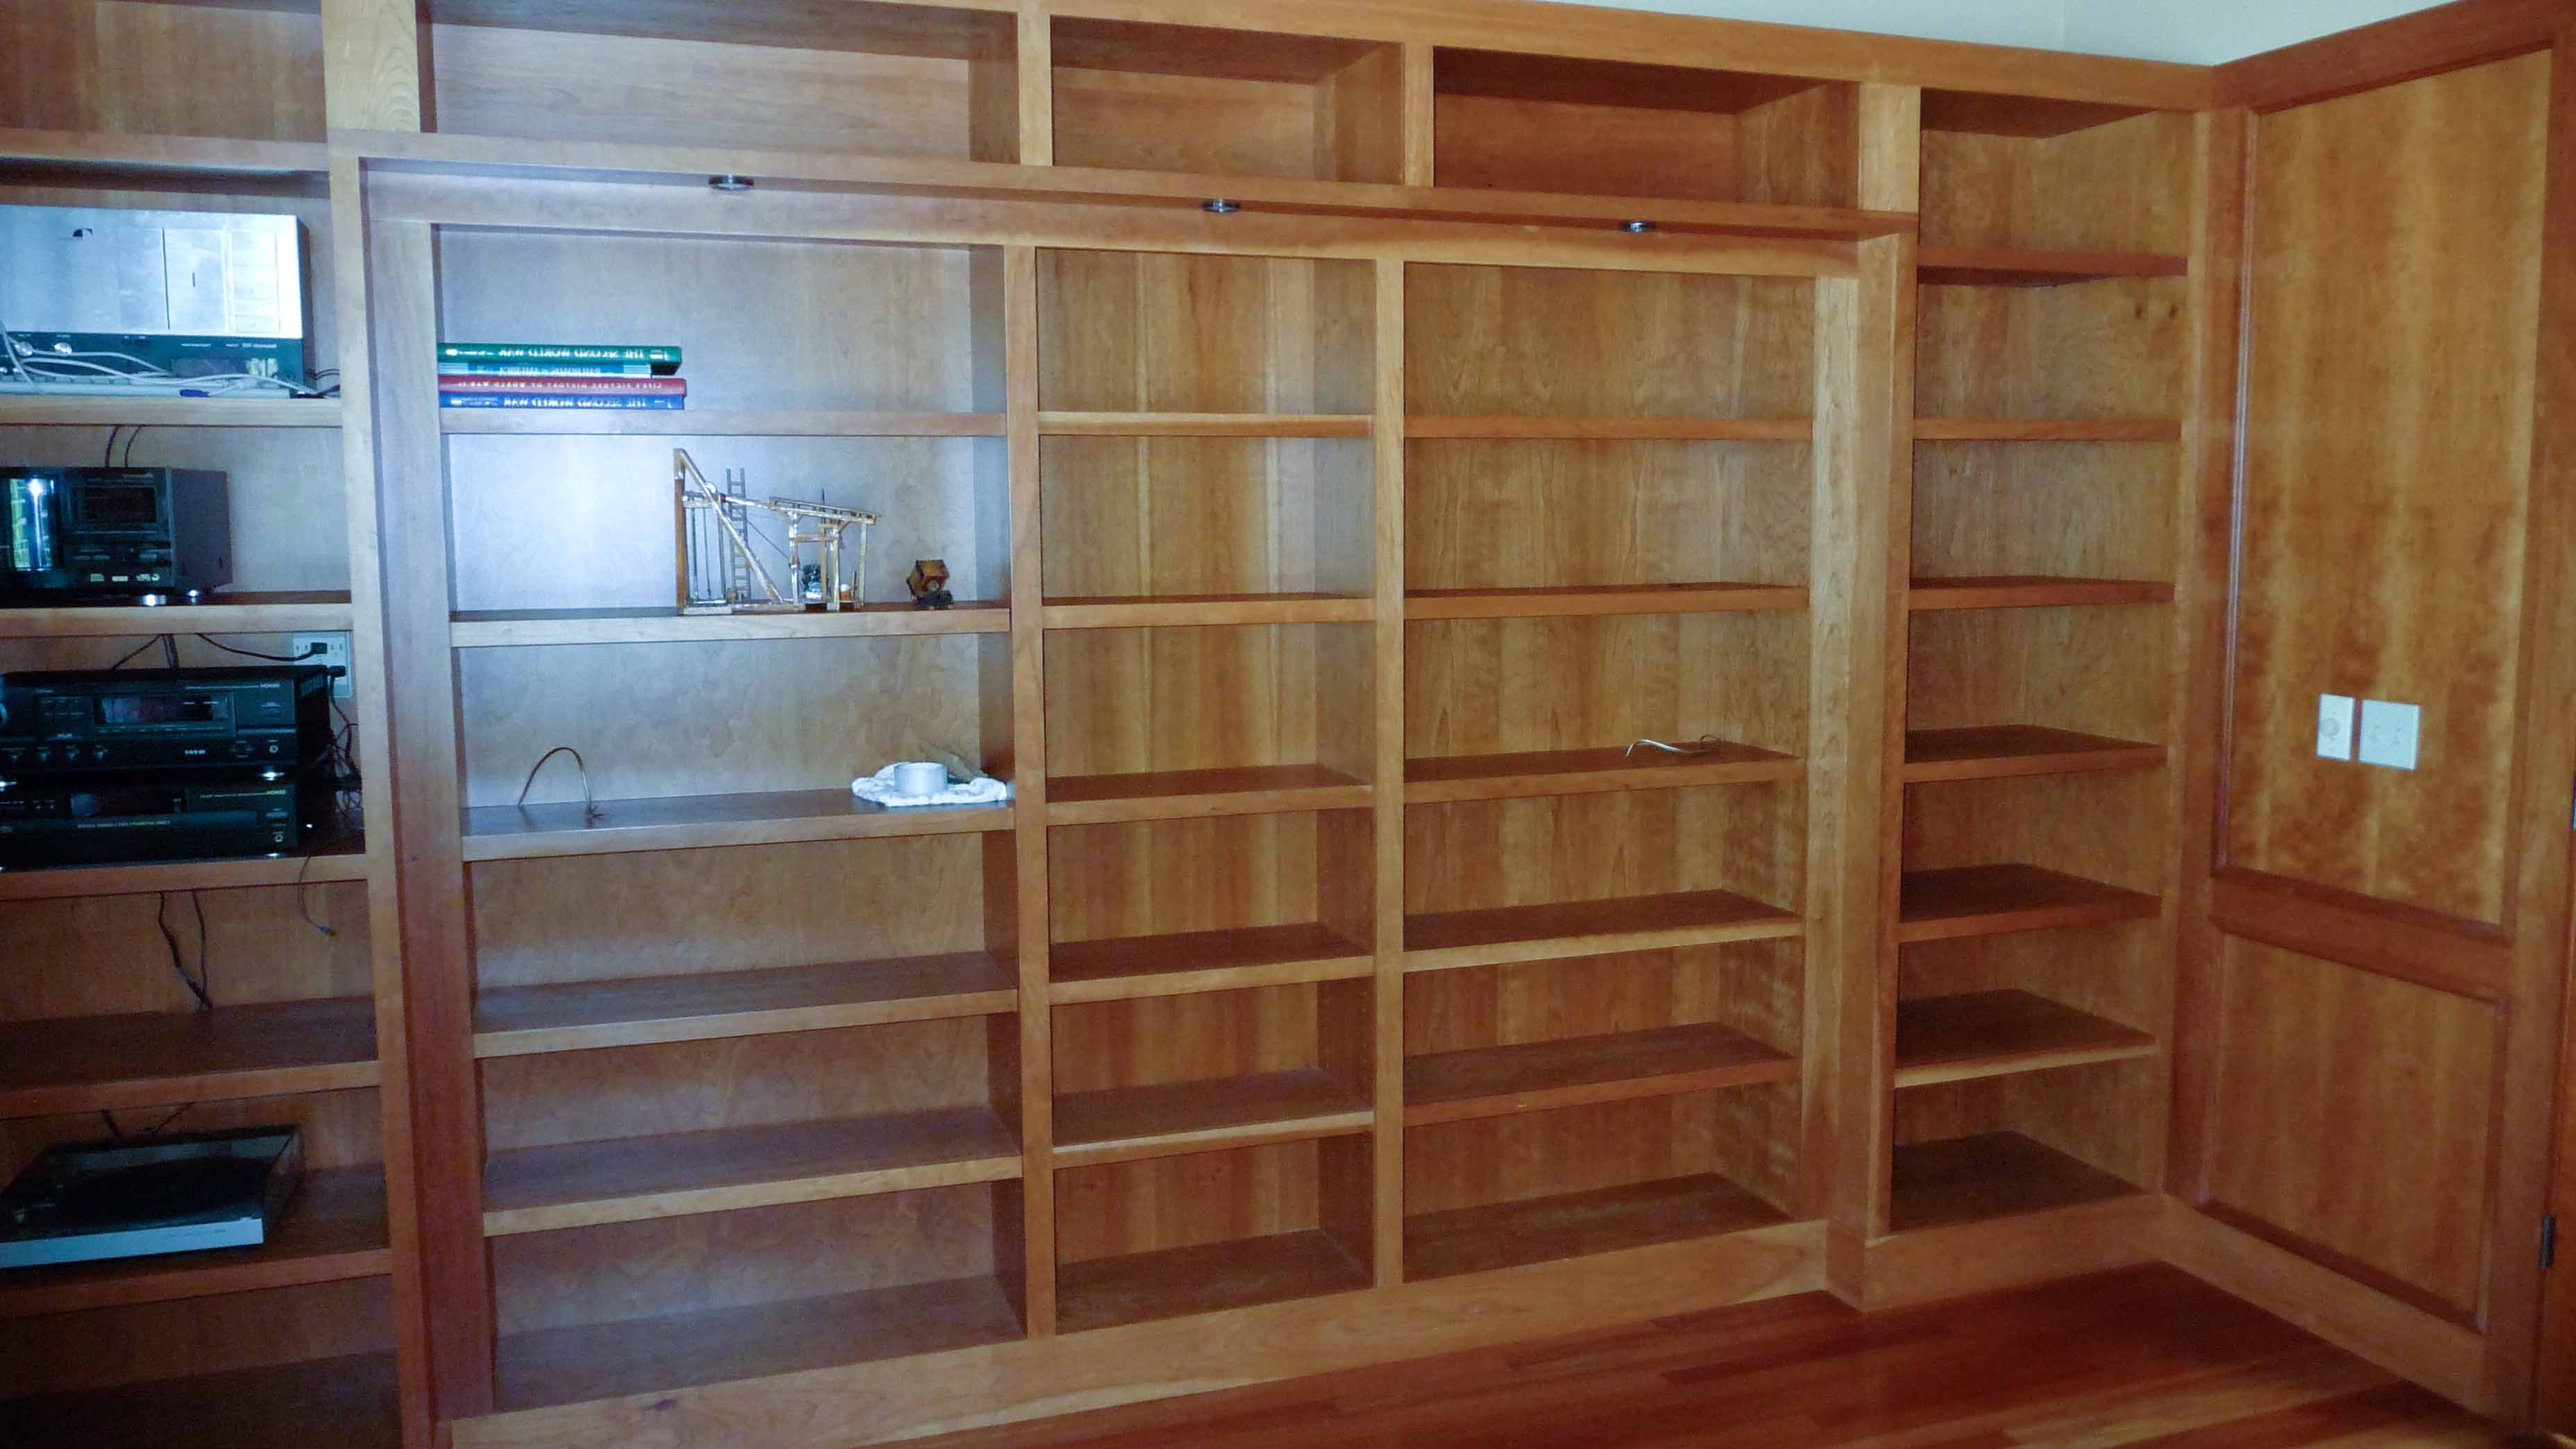 Fashionable Wall Units: Extraordinary Built In Bookcase Kit Built In Shelves In Built In Bookcases Kit (View 4 of 15)